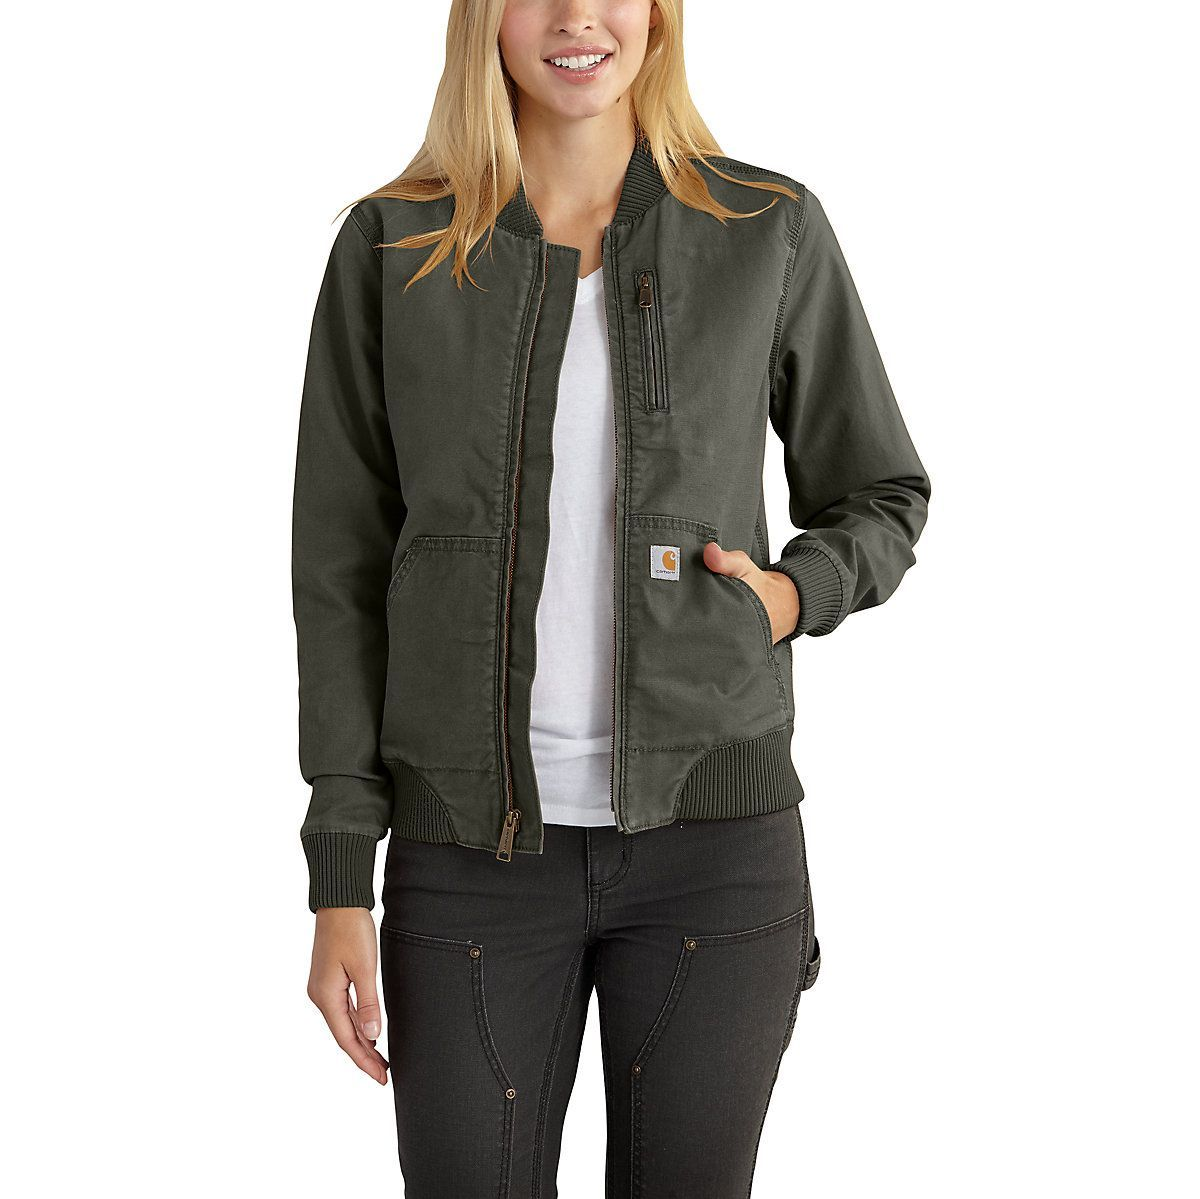 Shop The Crawford Bomber Jacket For Women S At Carhartt Com For Women S Outerwear That Works As Hard As You D Bomber Jacket Women Bomber Jacket Outerwear Women [ 1199 x 1200 Pixel ]